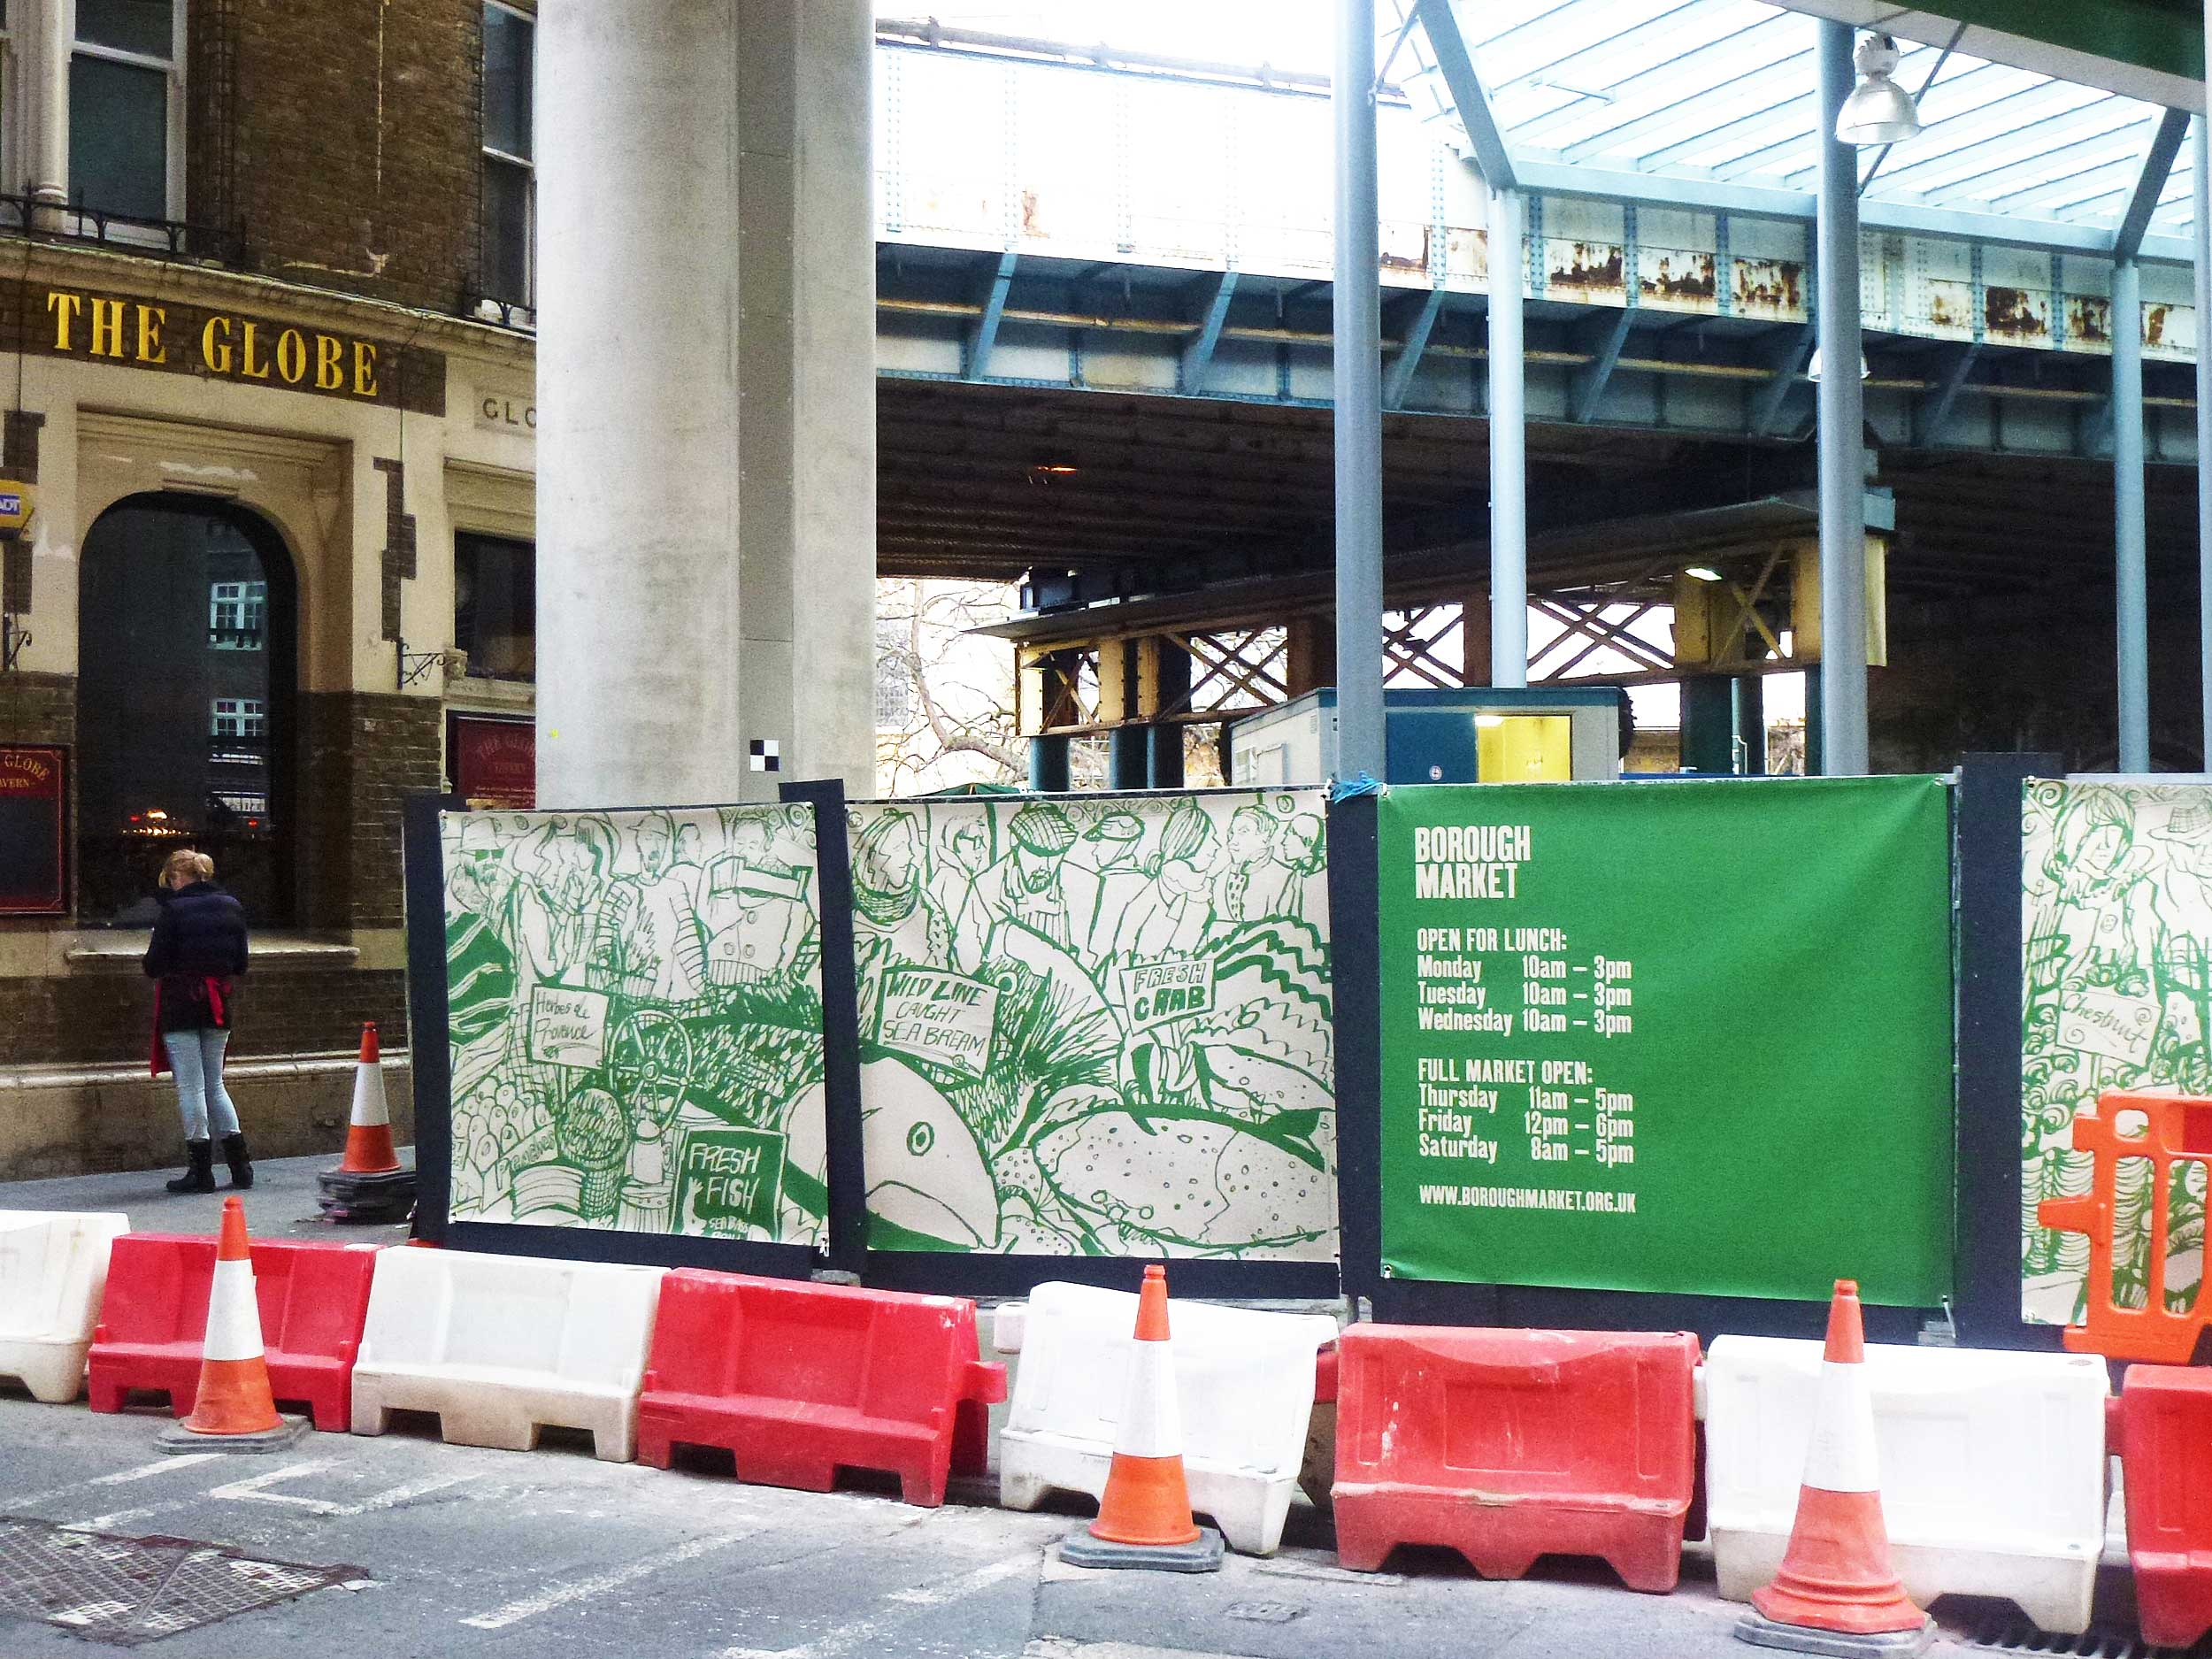 More Borough Market by James Oses, image 2